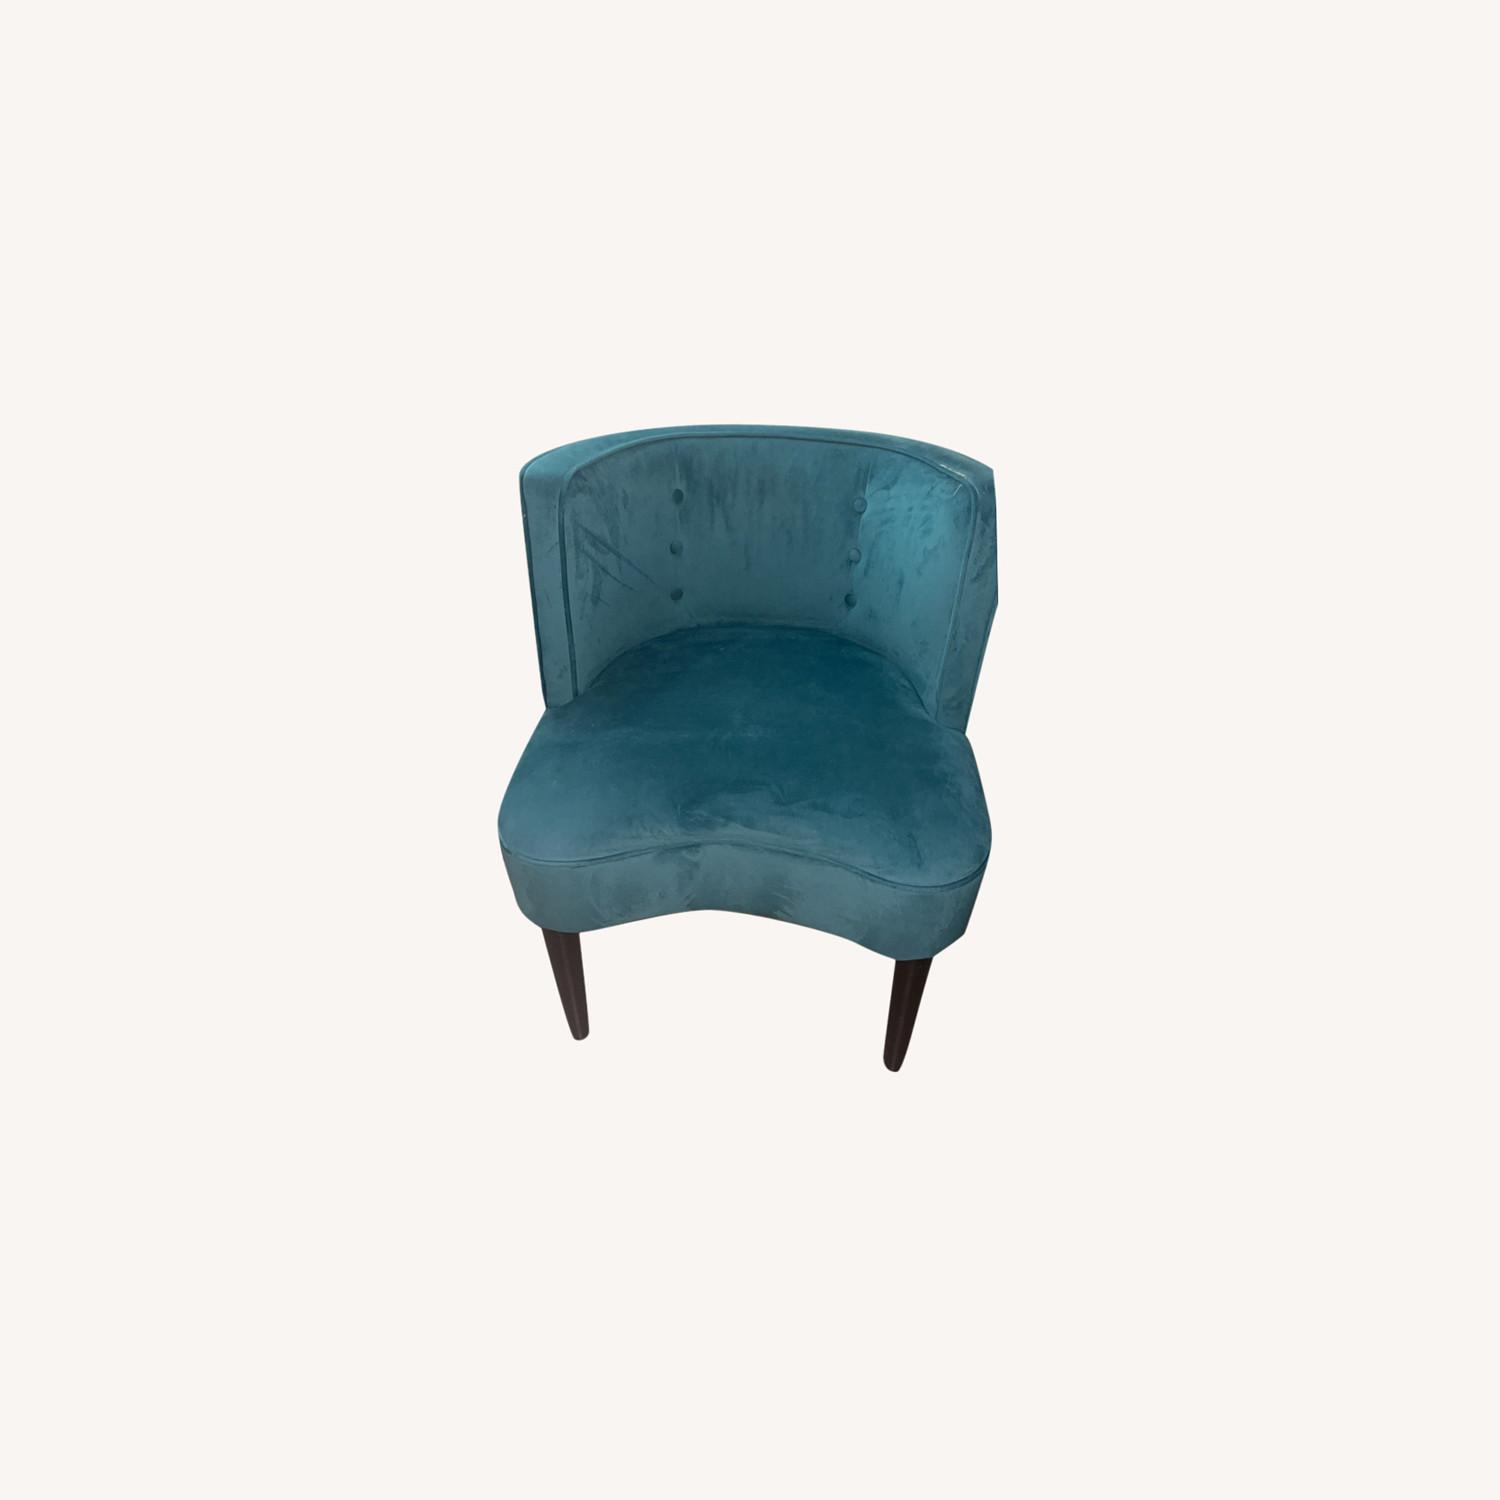 Target Teal Velvet Accent Chairs - image-0